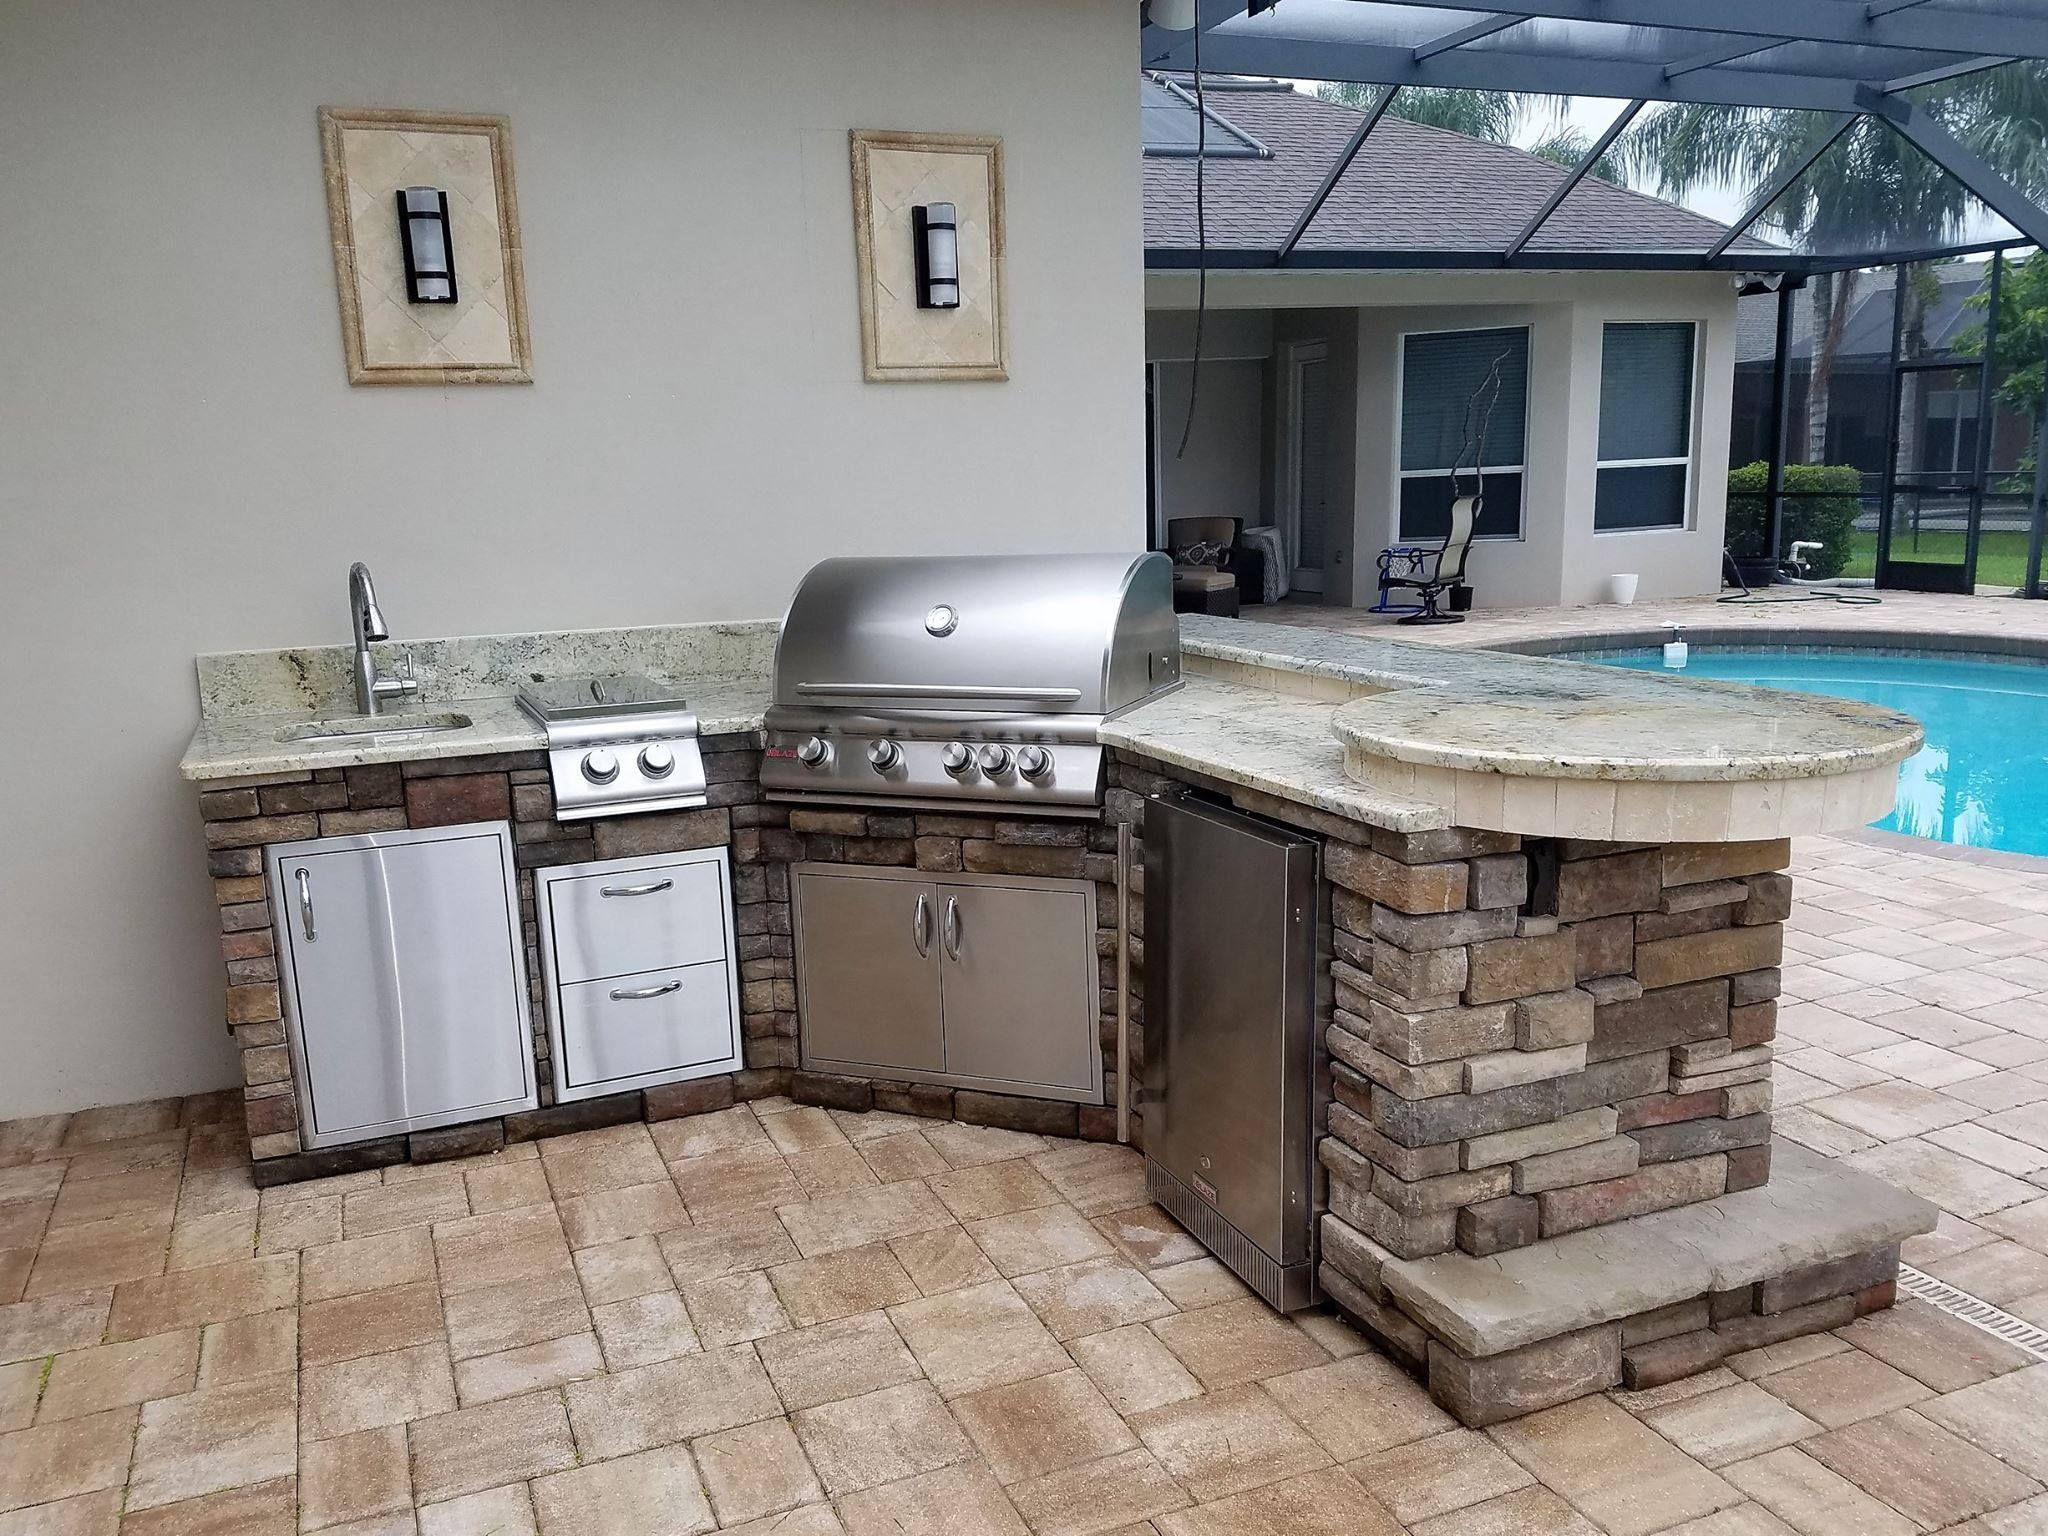 Combining Premium Features With Affordability Blaze Grills And Outdoor Products Are The Perfect Addition To Any Pa Grill Design Outdoor Kitchen Charcoal Grill